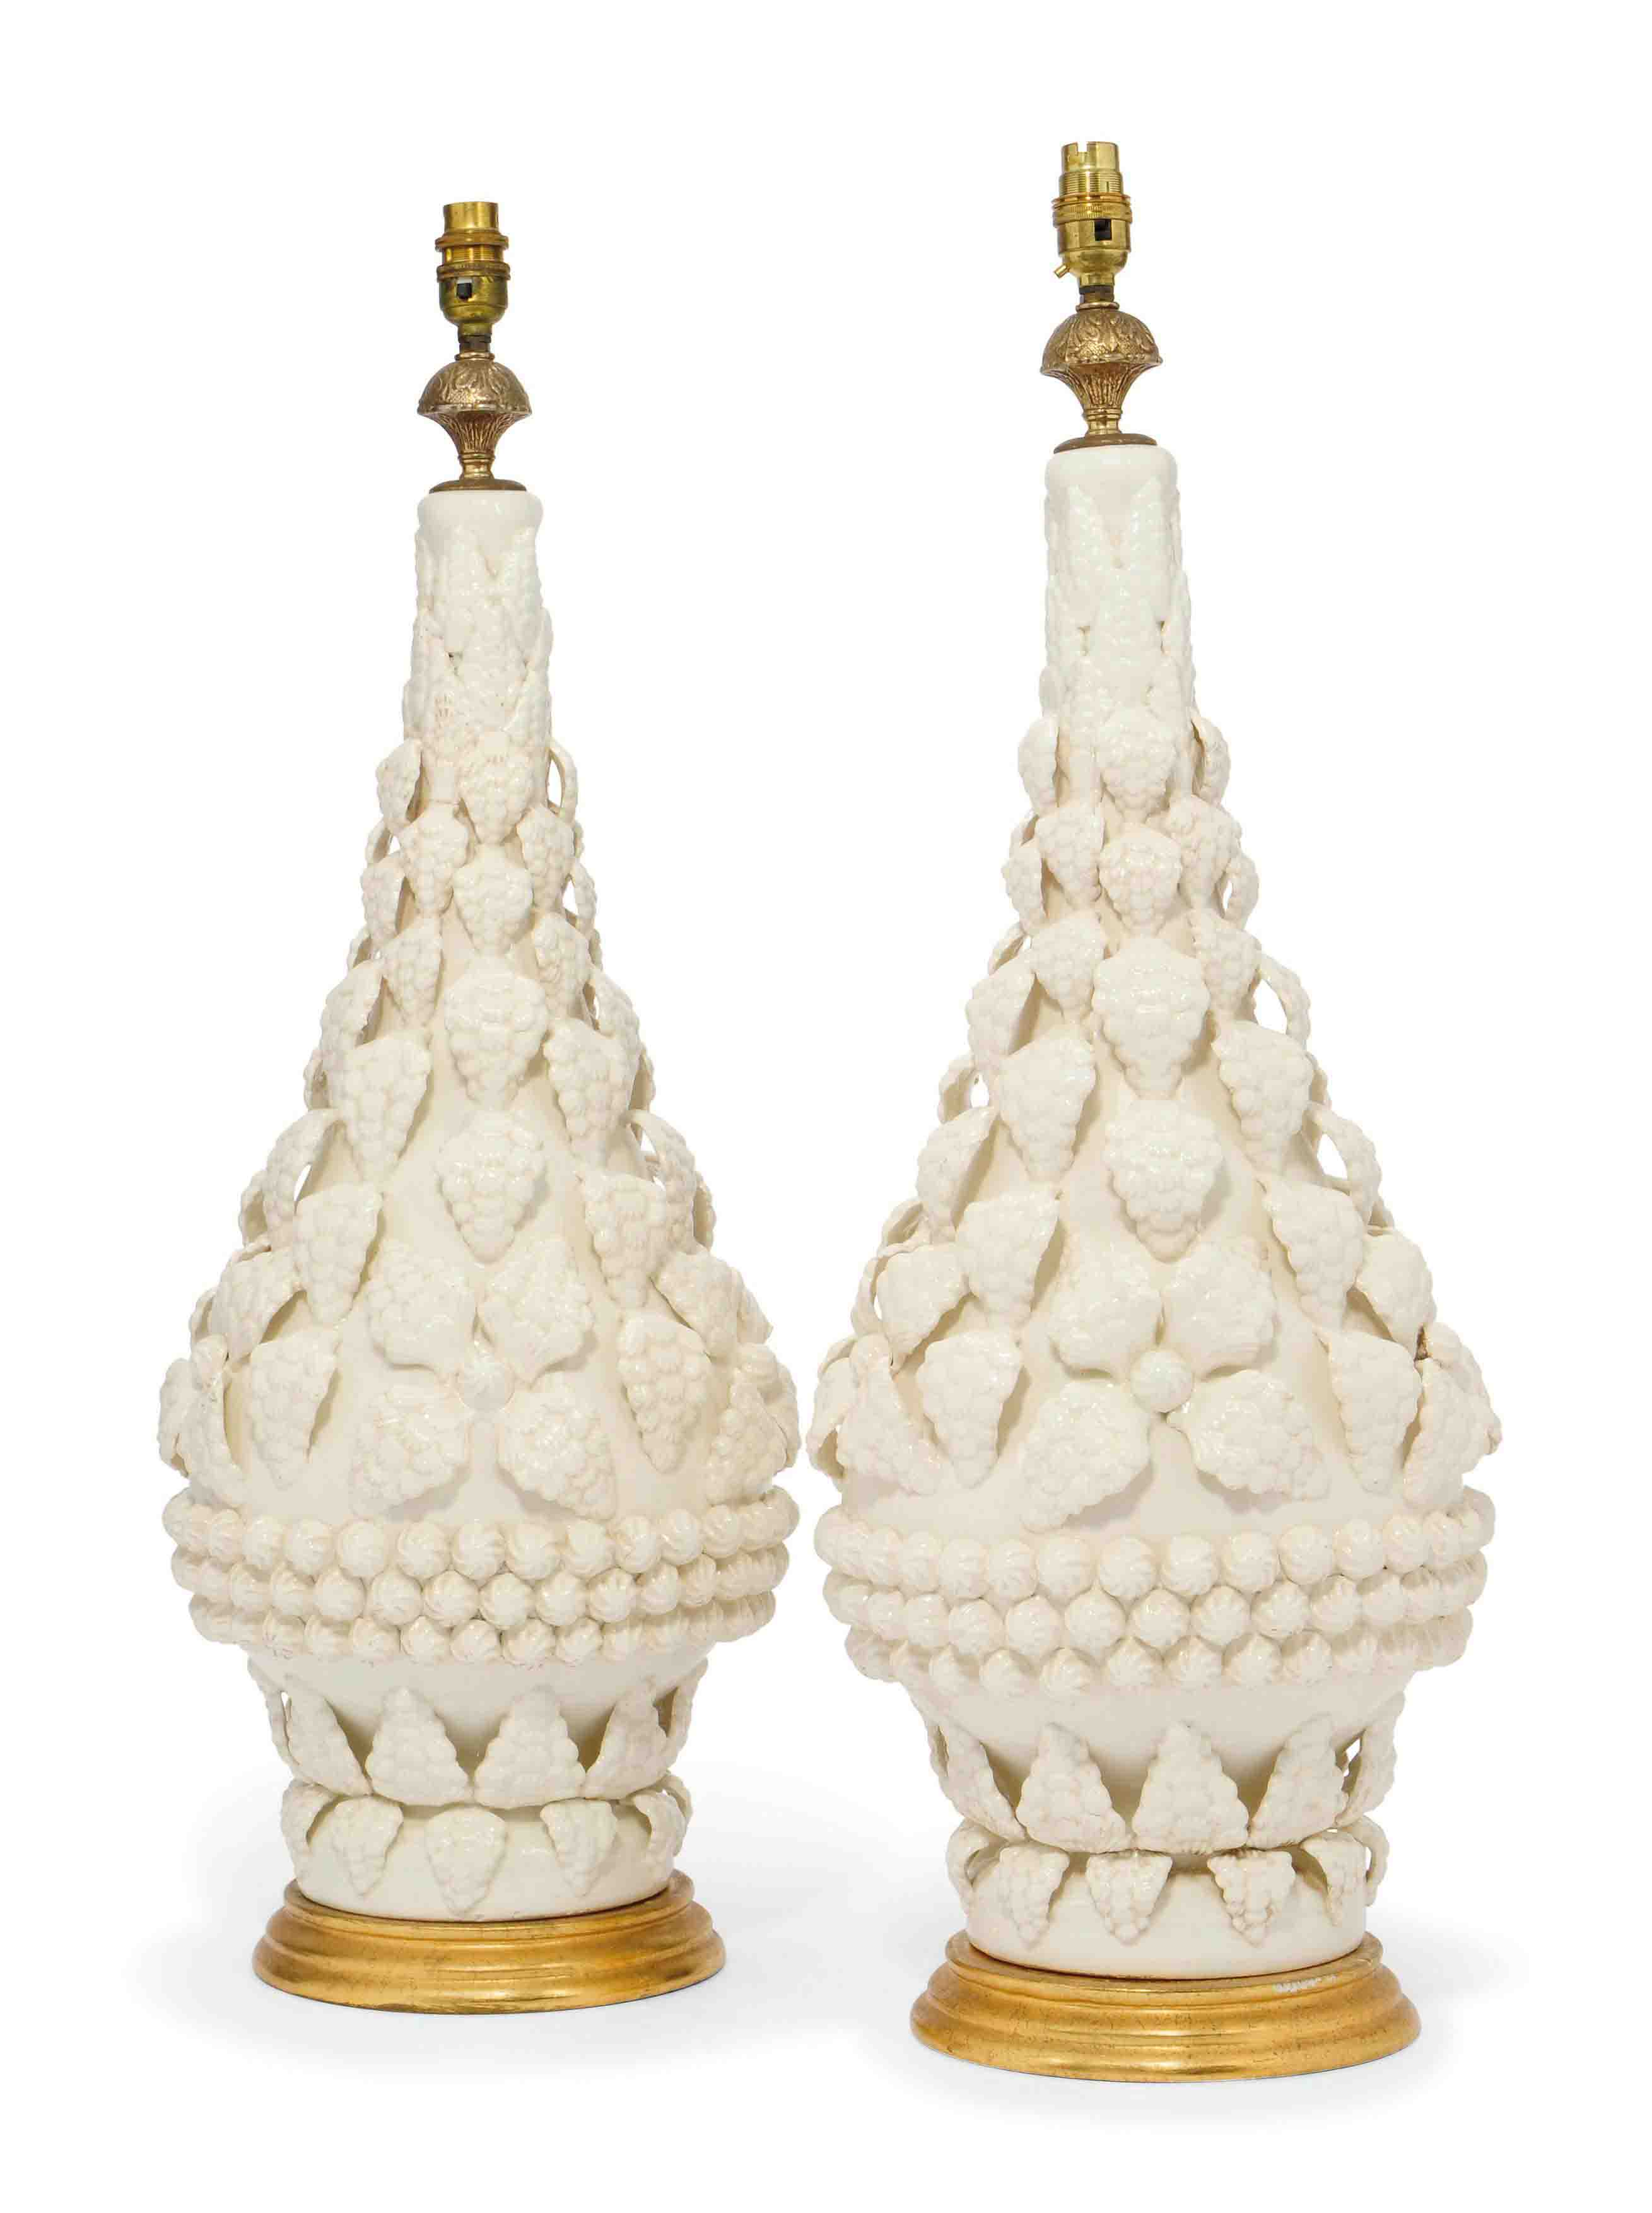 A PAIR OF CONTINENTAL FAIENCE VASES